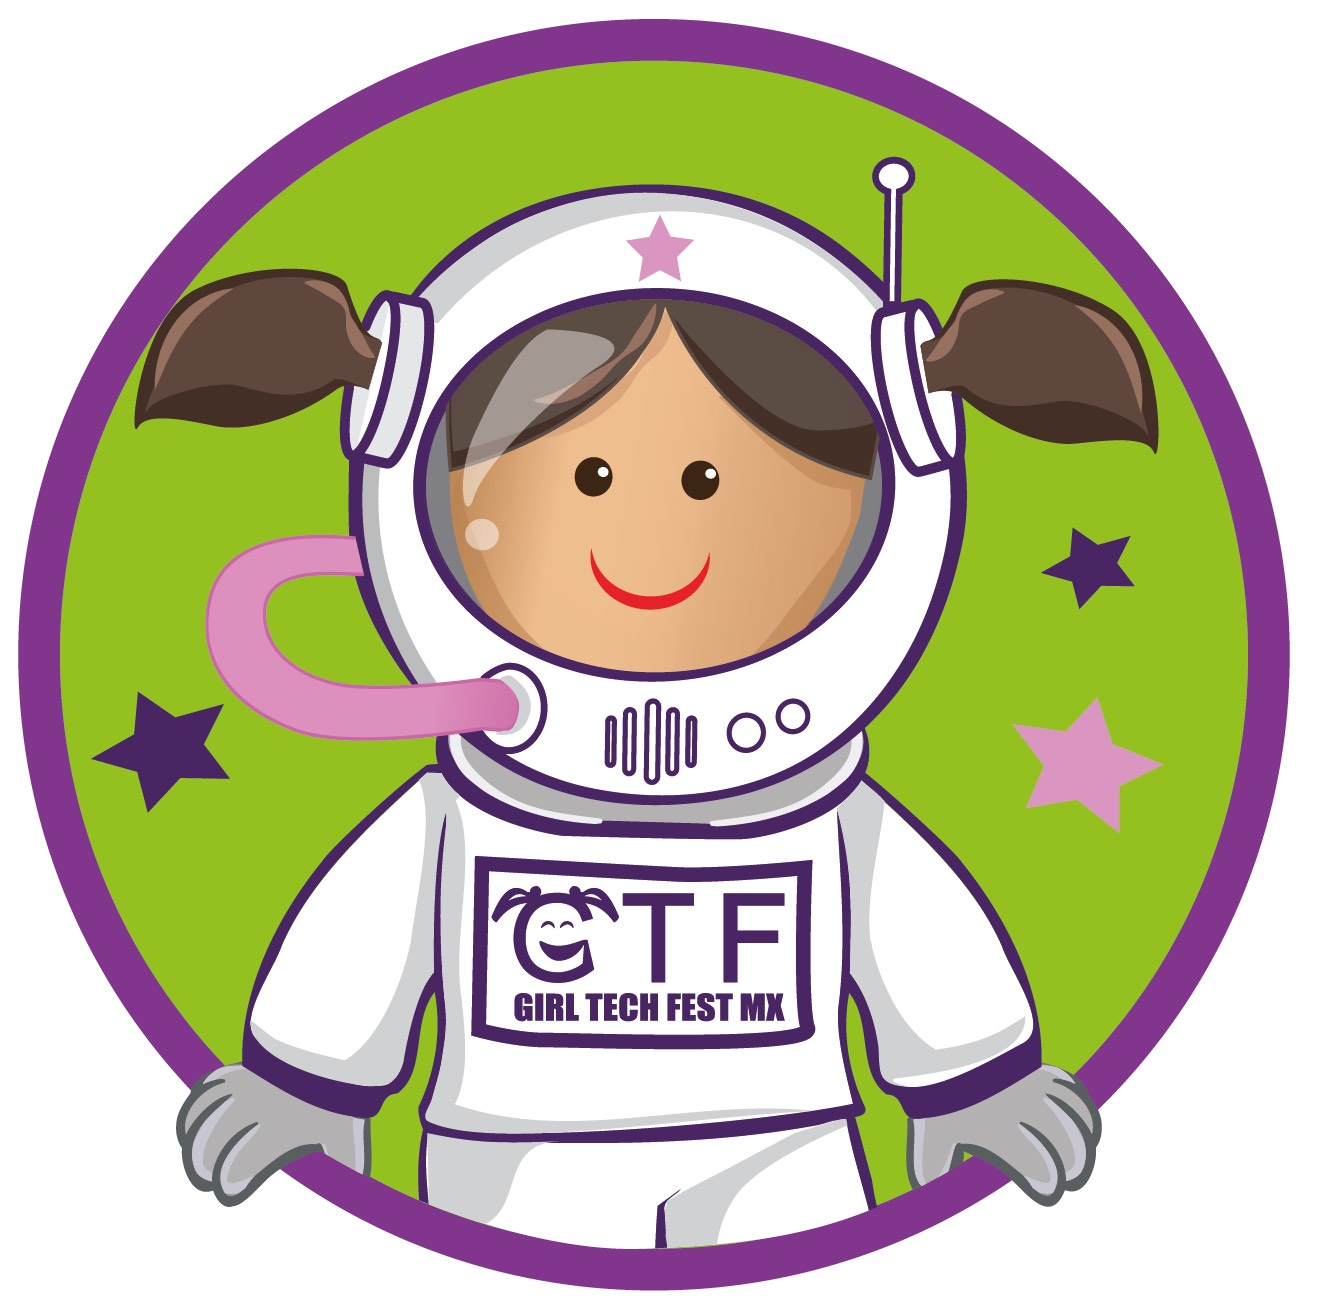 Girl Tech Fest Logo